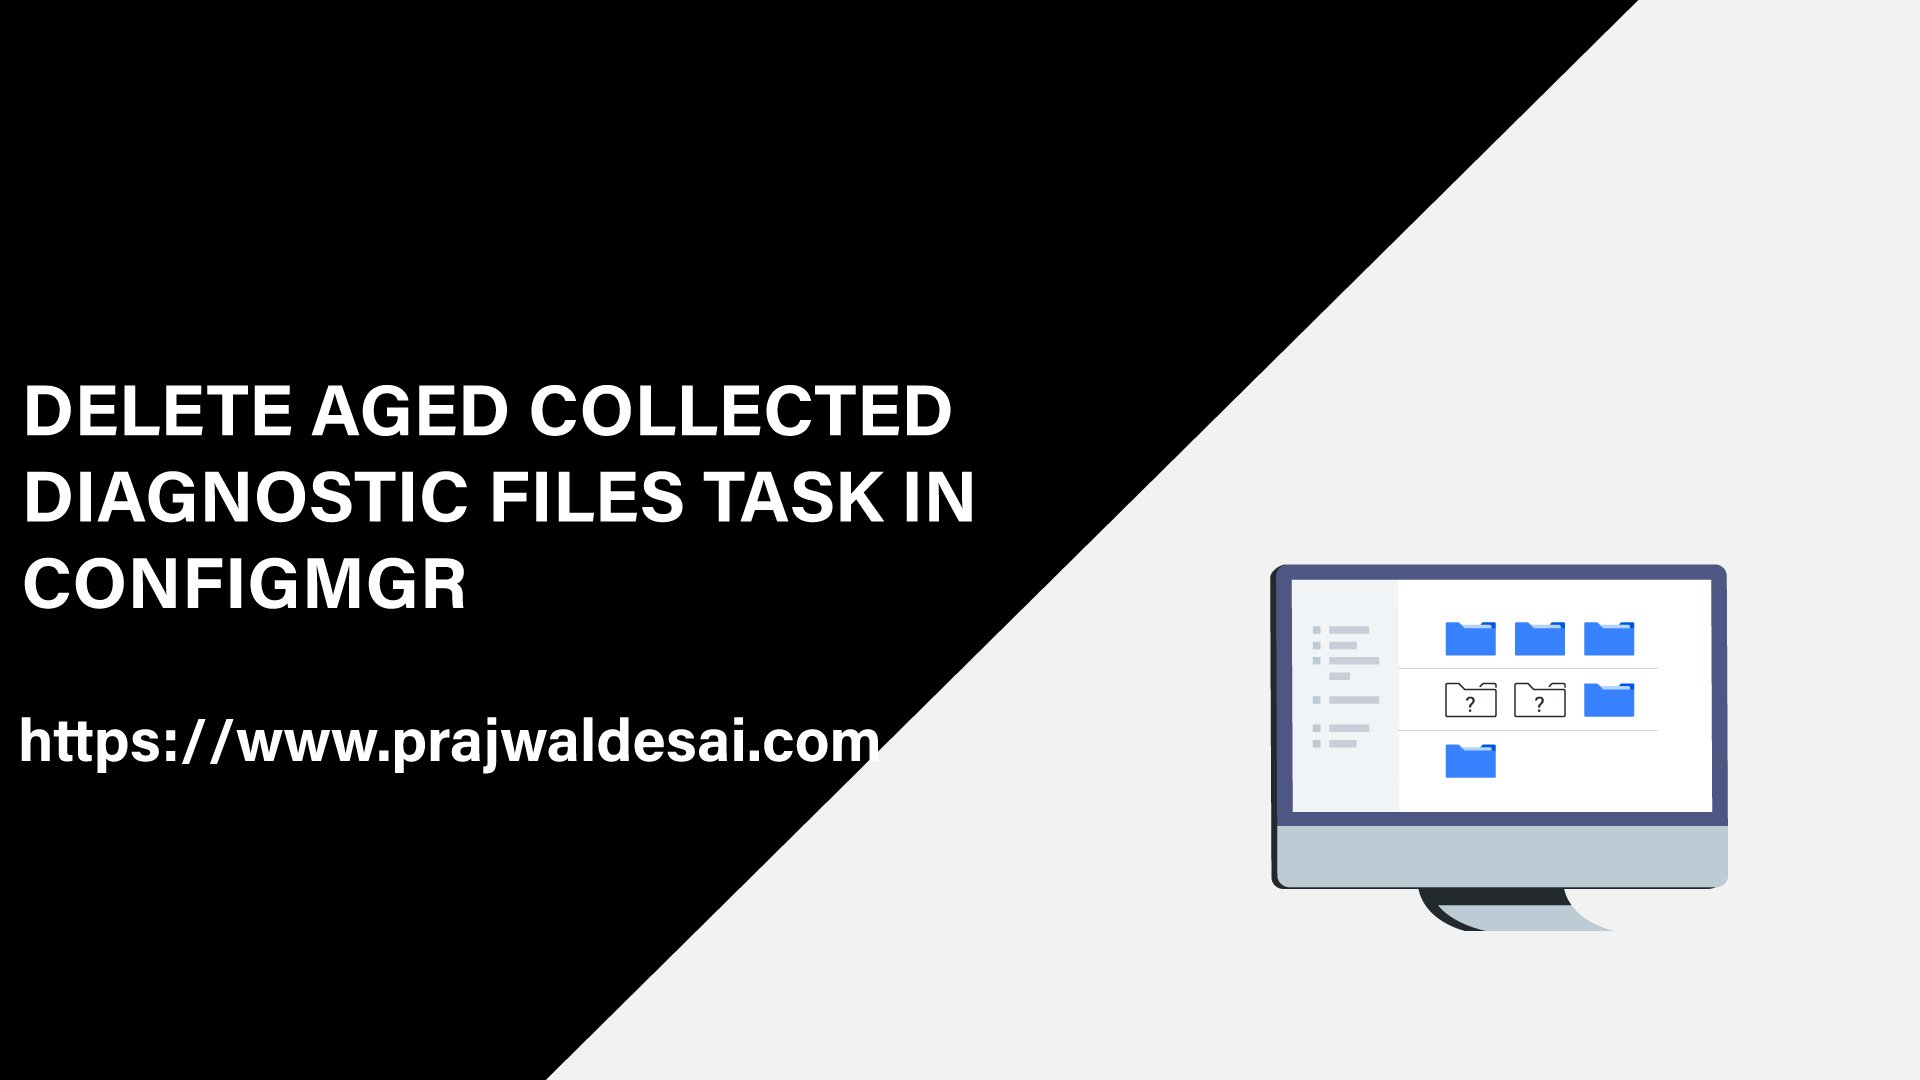 Delete Aged Collected Diagnostic Files task in ConfigMgr